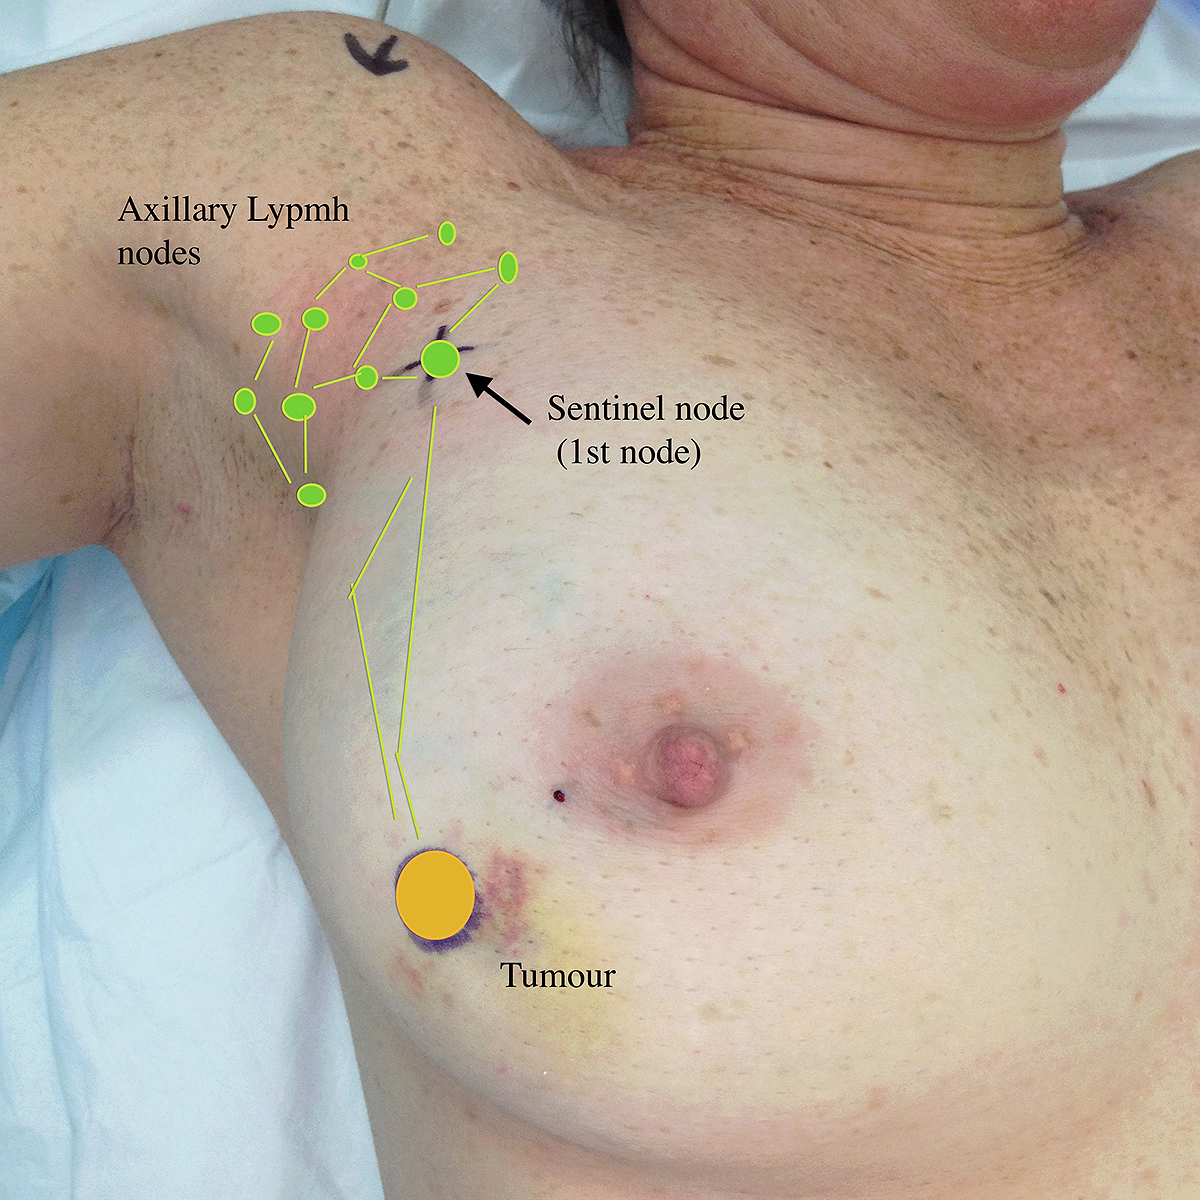 Axillary Lymph Node Surgery Axillary Lymph Node Clearance And Sentinel Lymph Node Biopsy Breastendocrinebrisbane